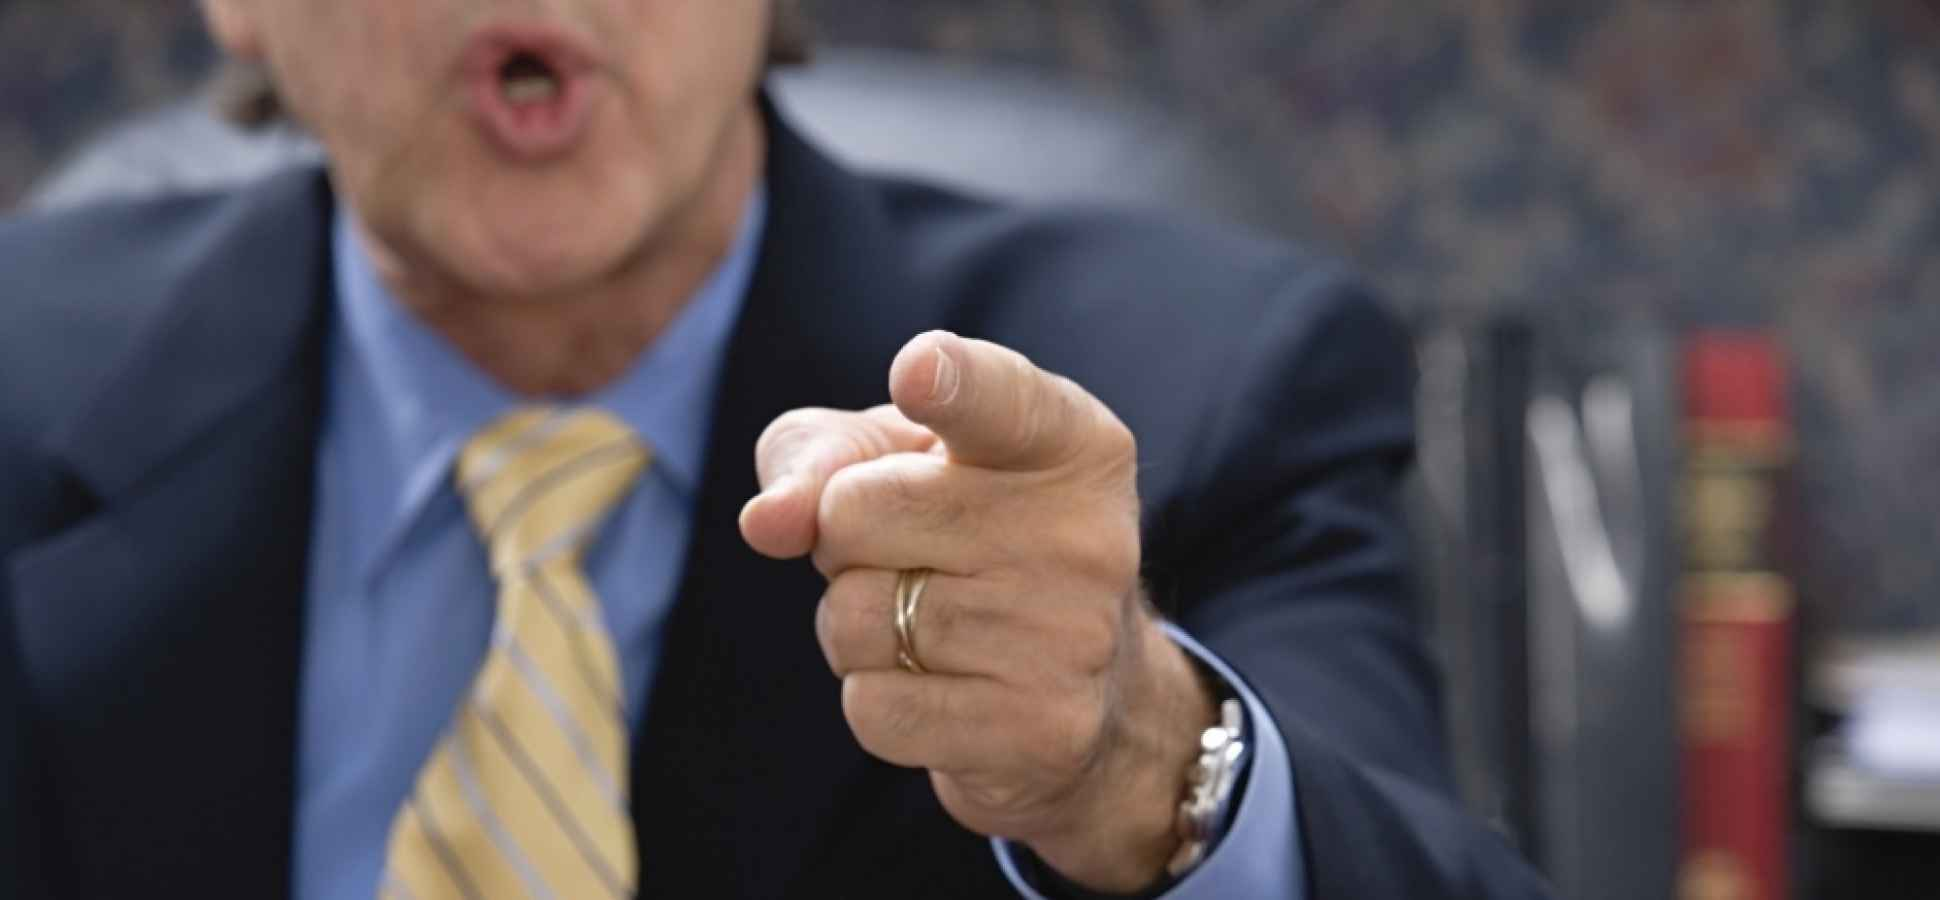 The Top 10 Behaviors of Remarkably Bad Bosses